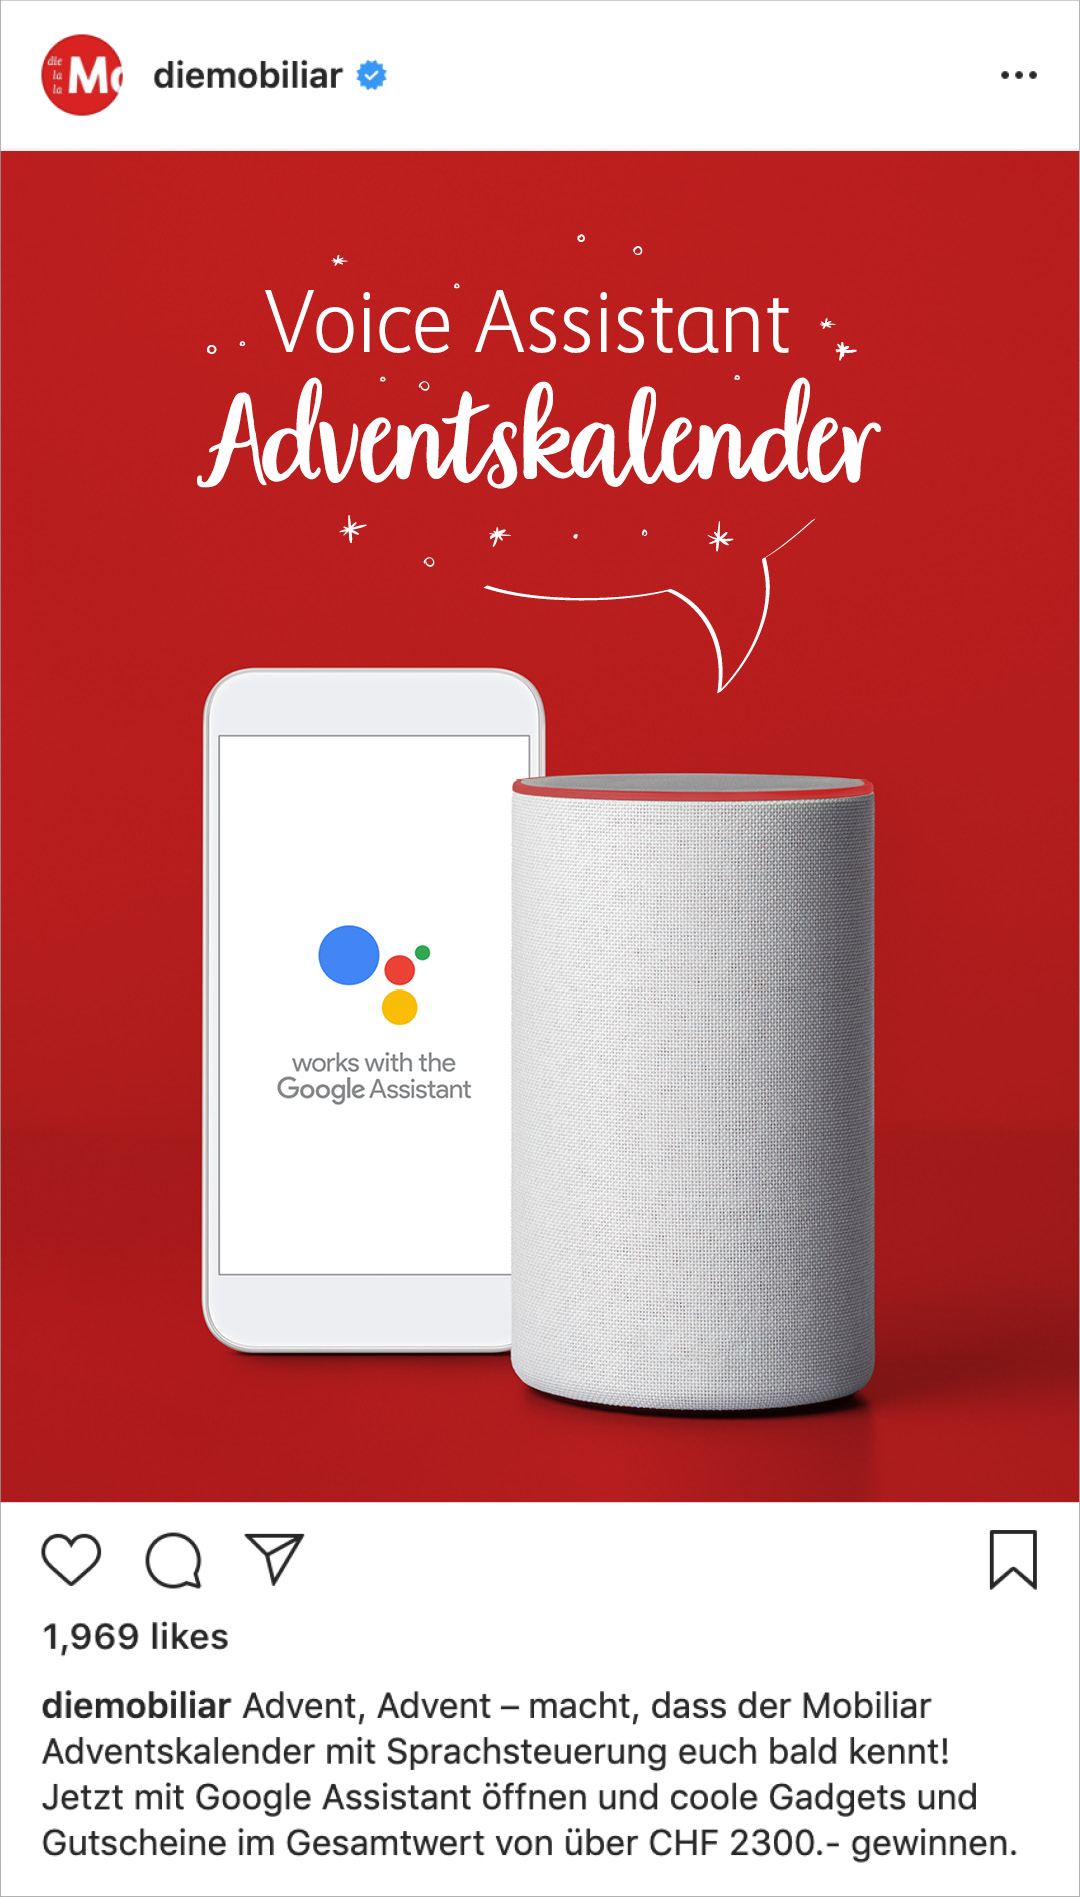 4_Mobiliar_MM_Voice Assistant Keyvisual